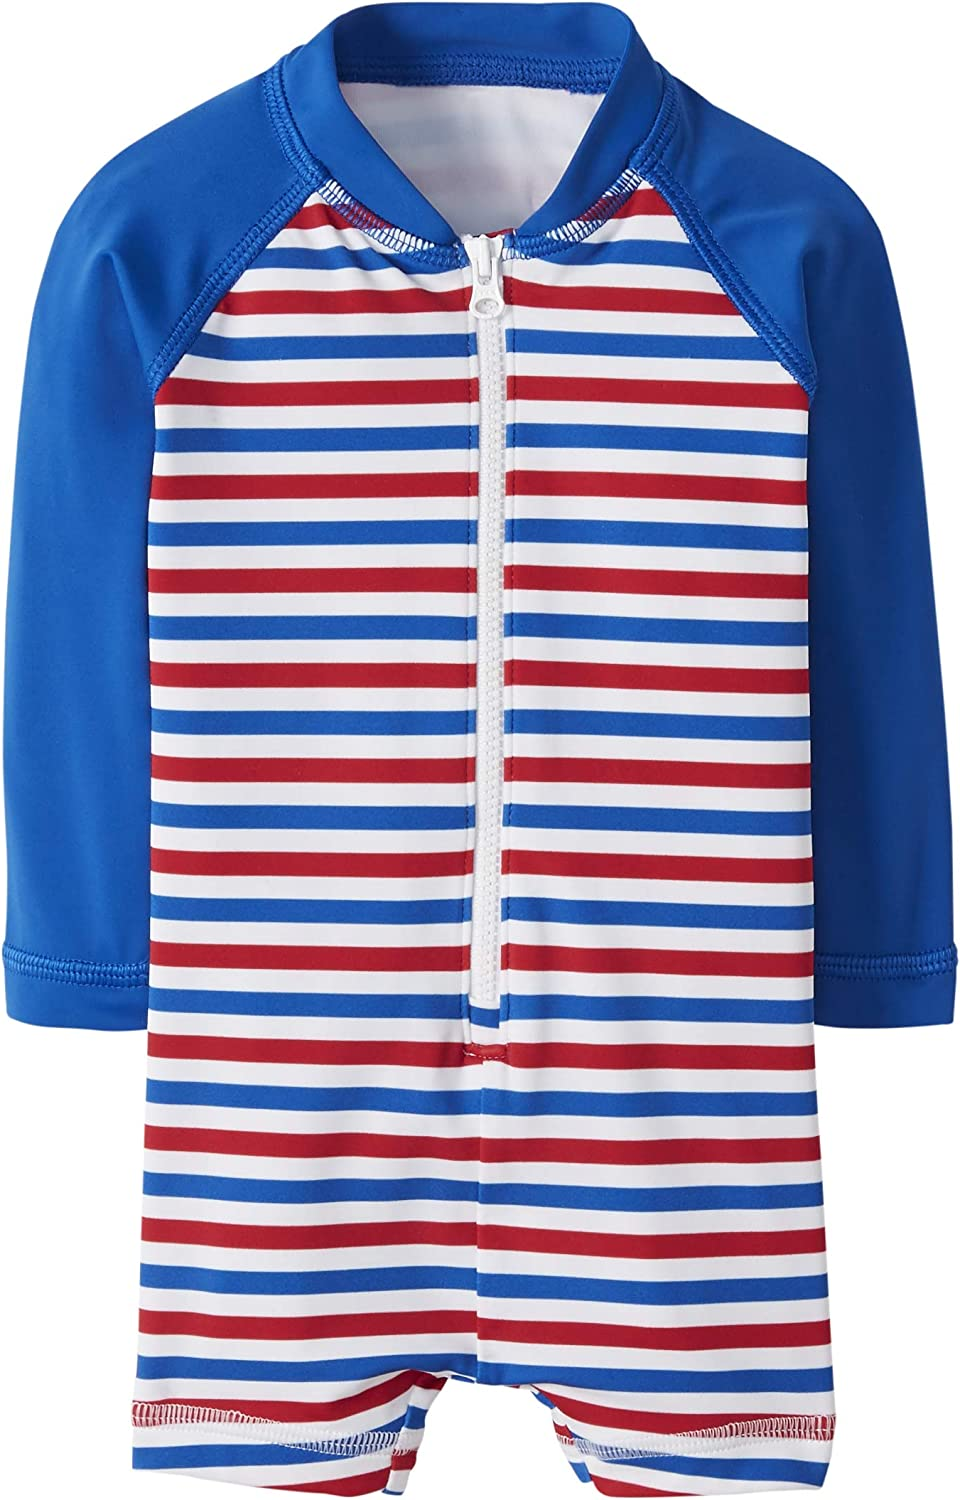 Hanna Andersson Rash Guard Suit Fourth of July Stripe